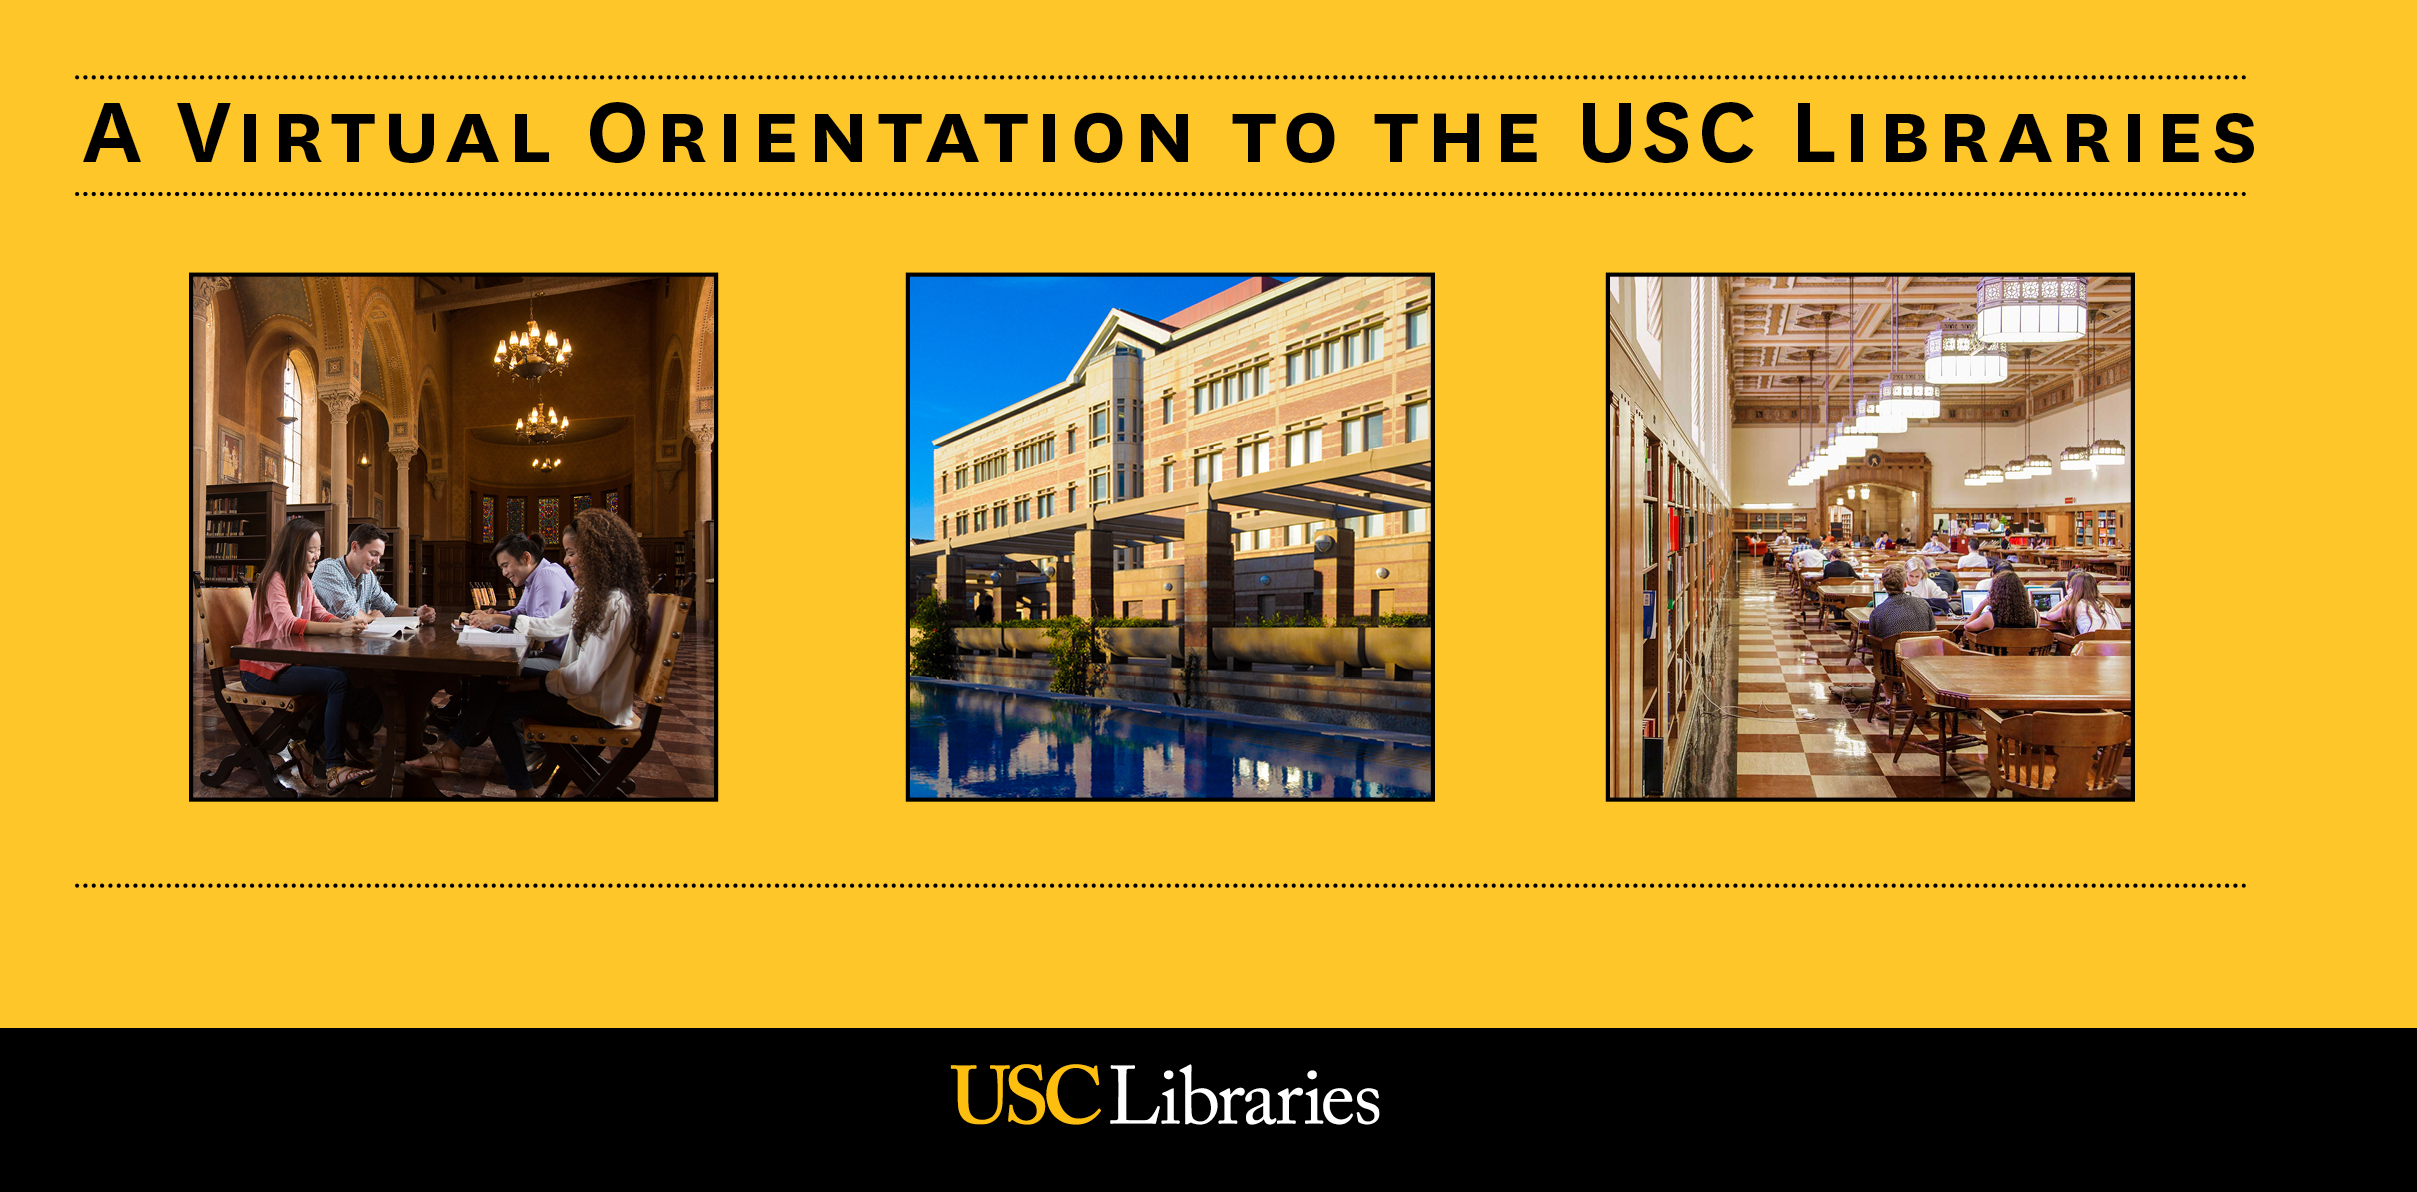 A Virtual Orientation to the USC Libraries Image